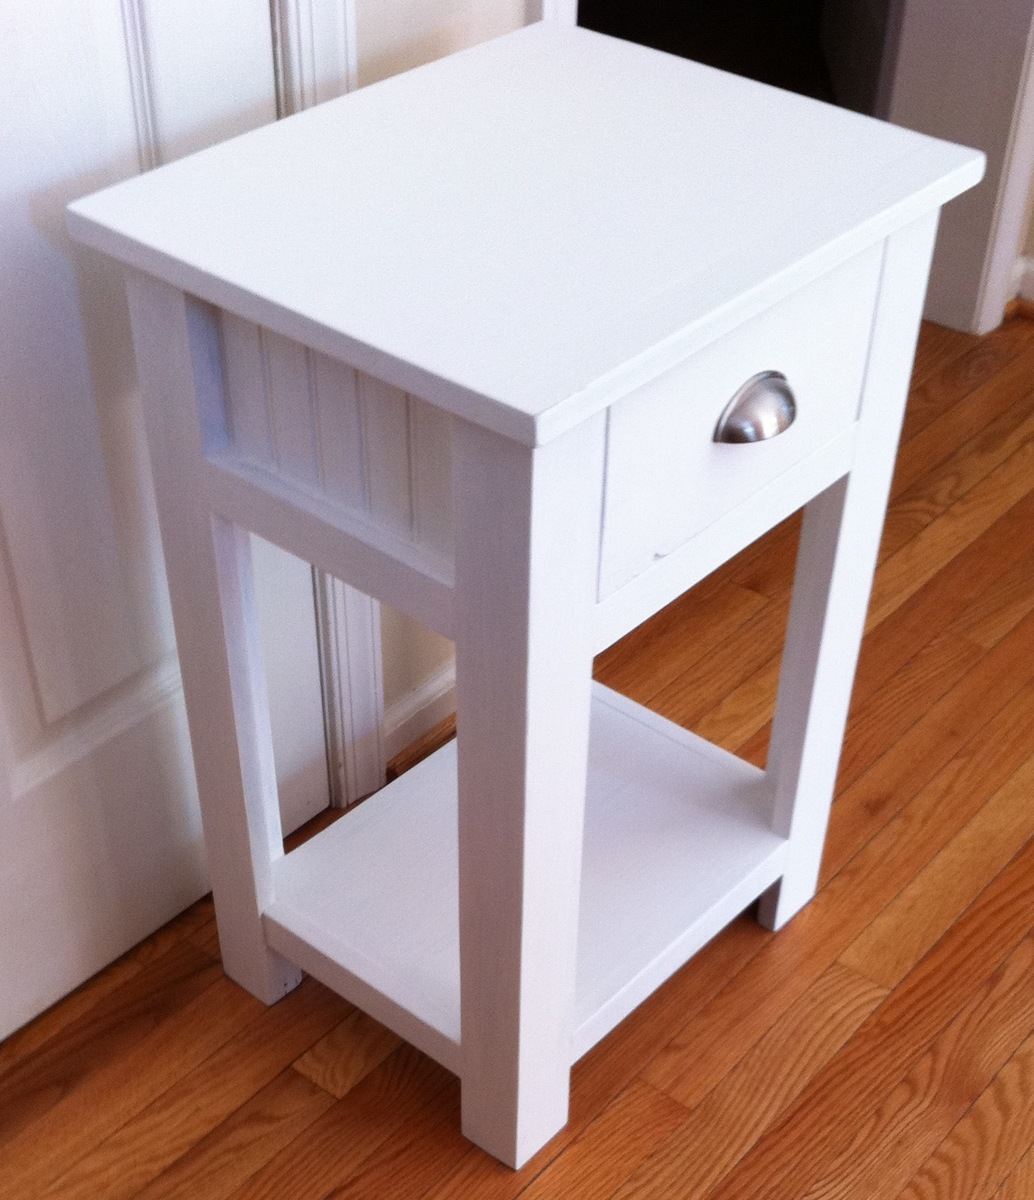 Ana white simple white nightstand diy projects for Simple nightstand designs